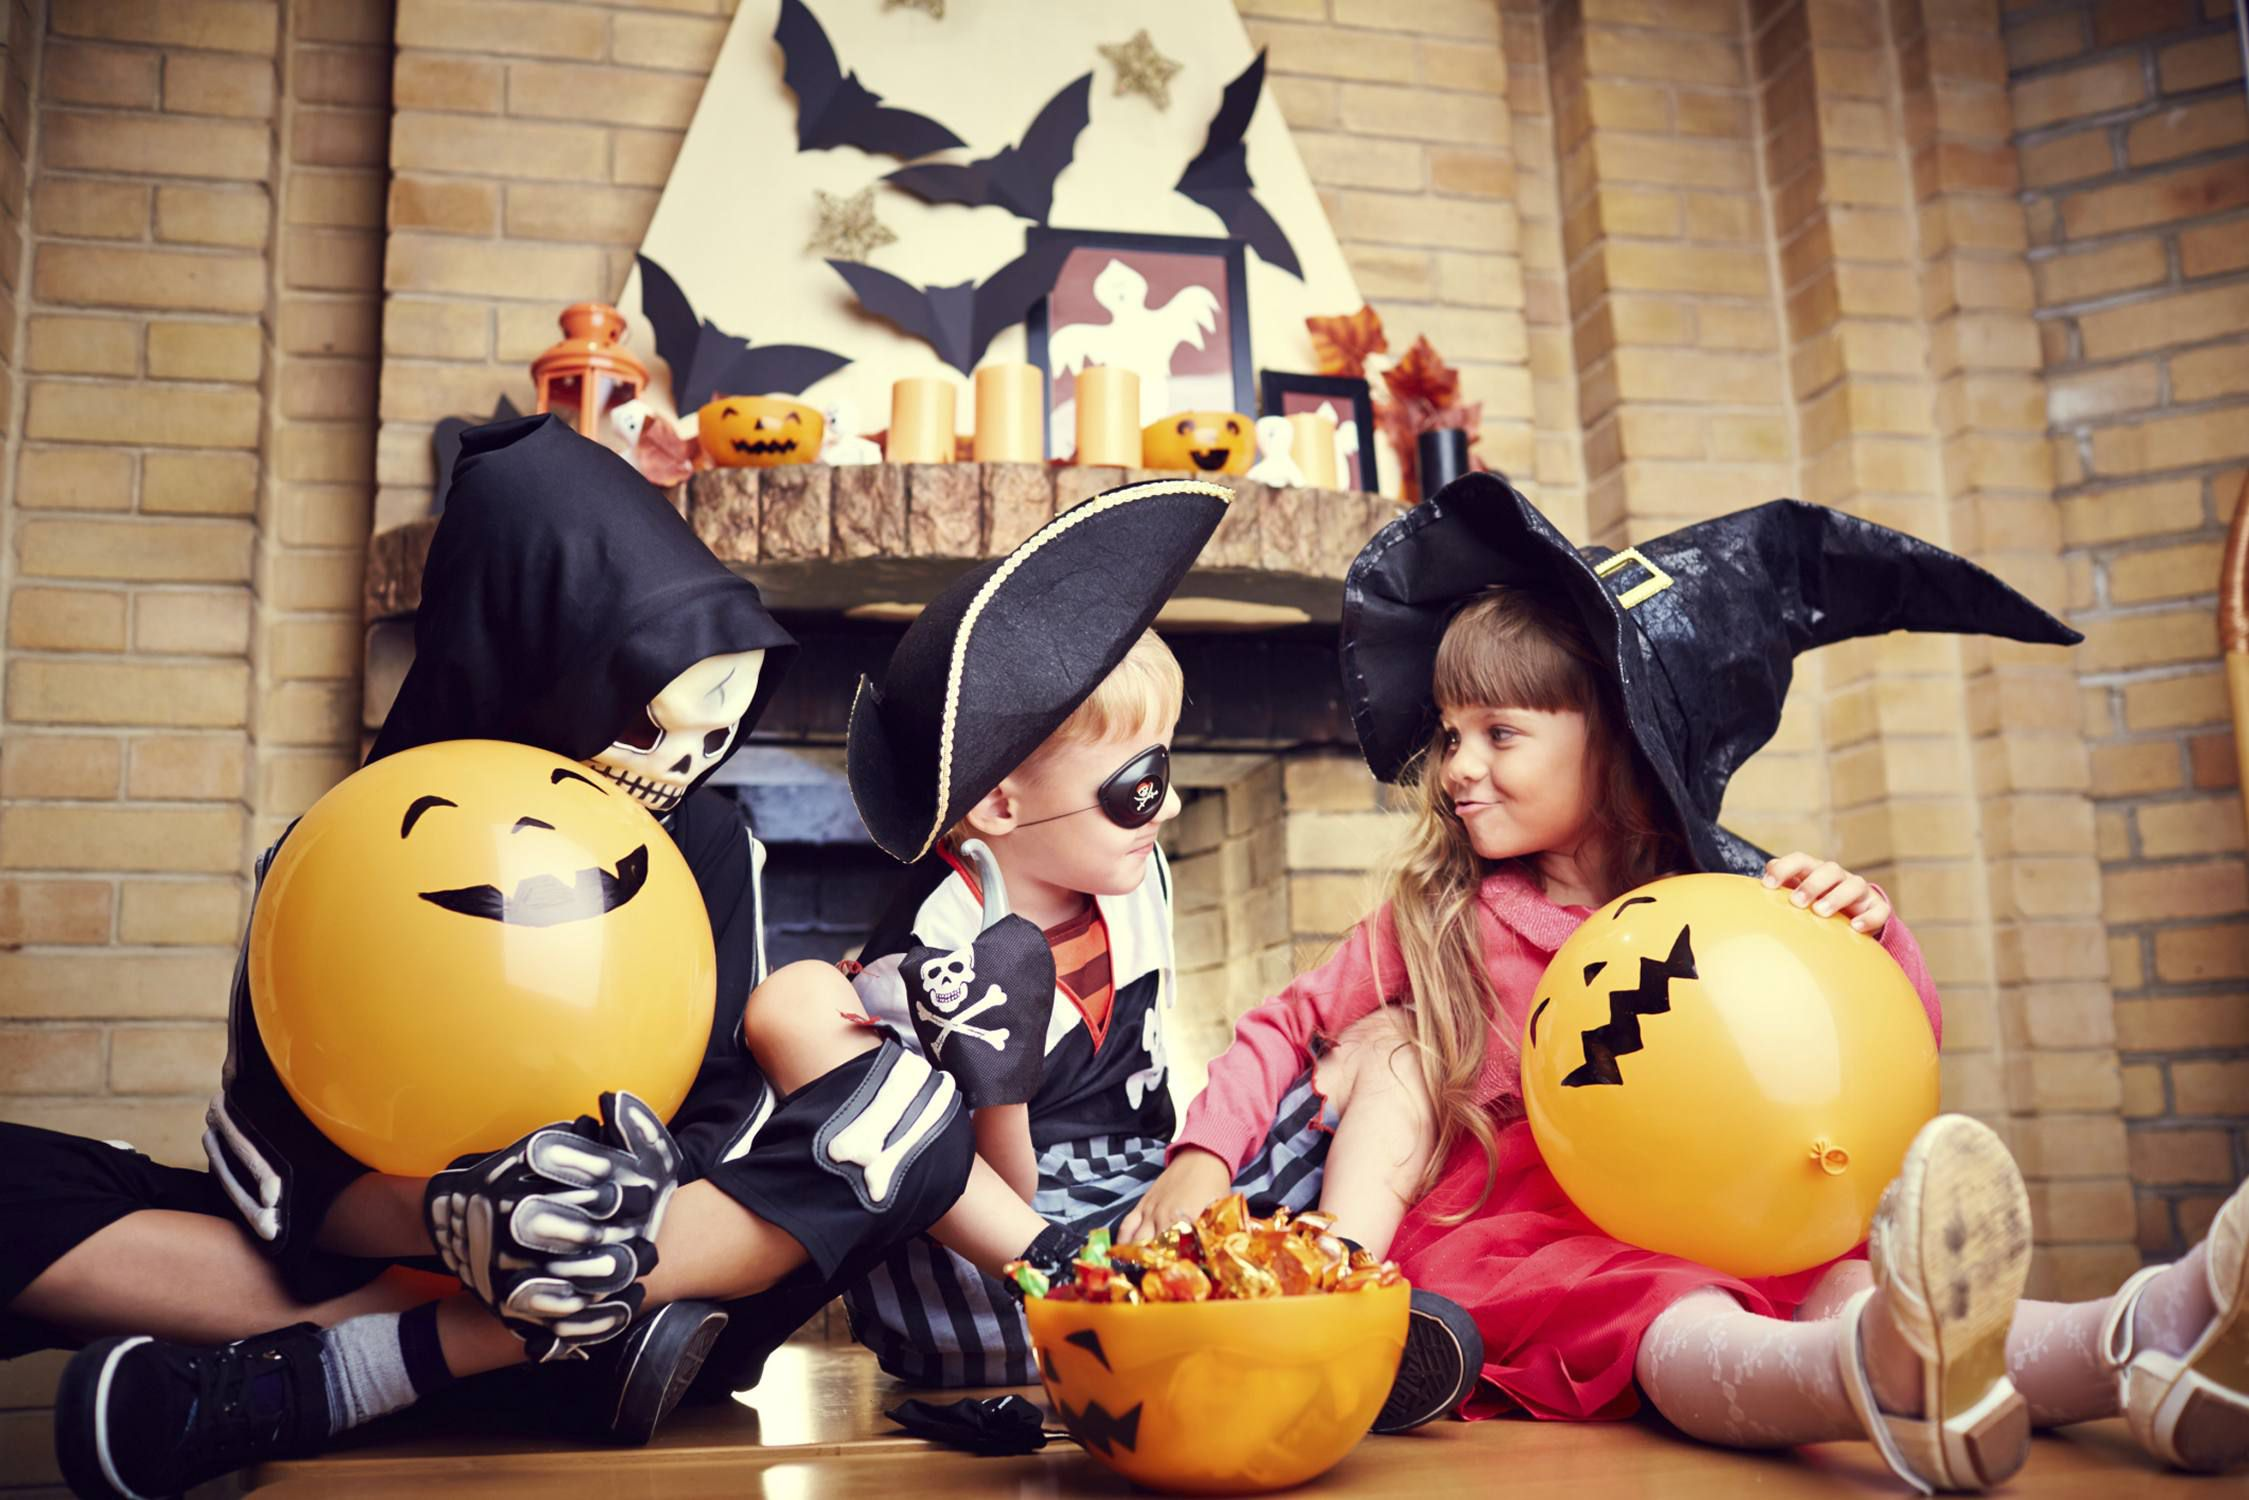 7 Top Tips For Throwing A Grand Party In A Small Home: Kid-Friendly Halloween Party Ideas That Aren't Scary